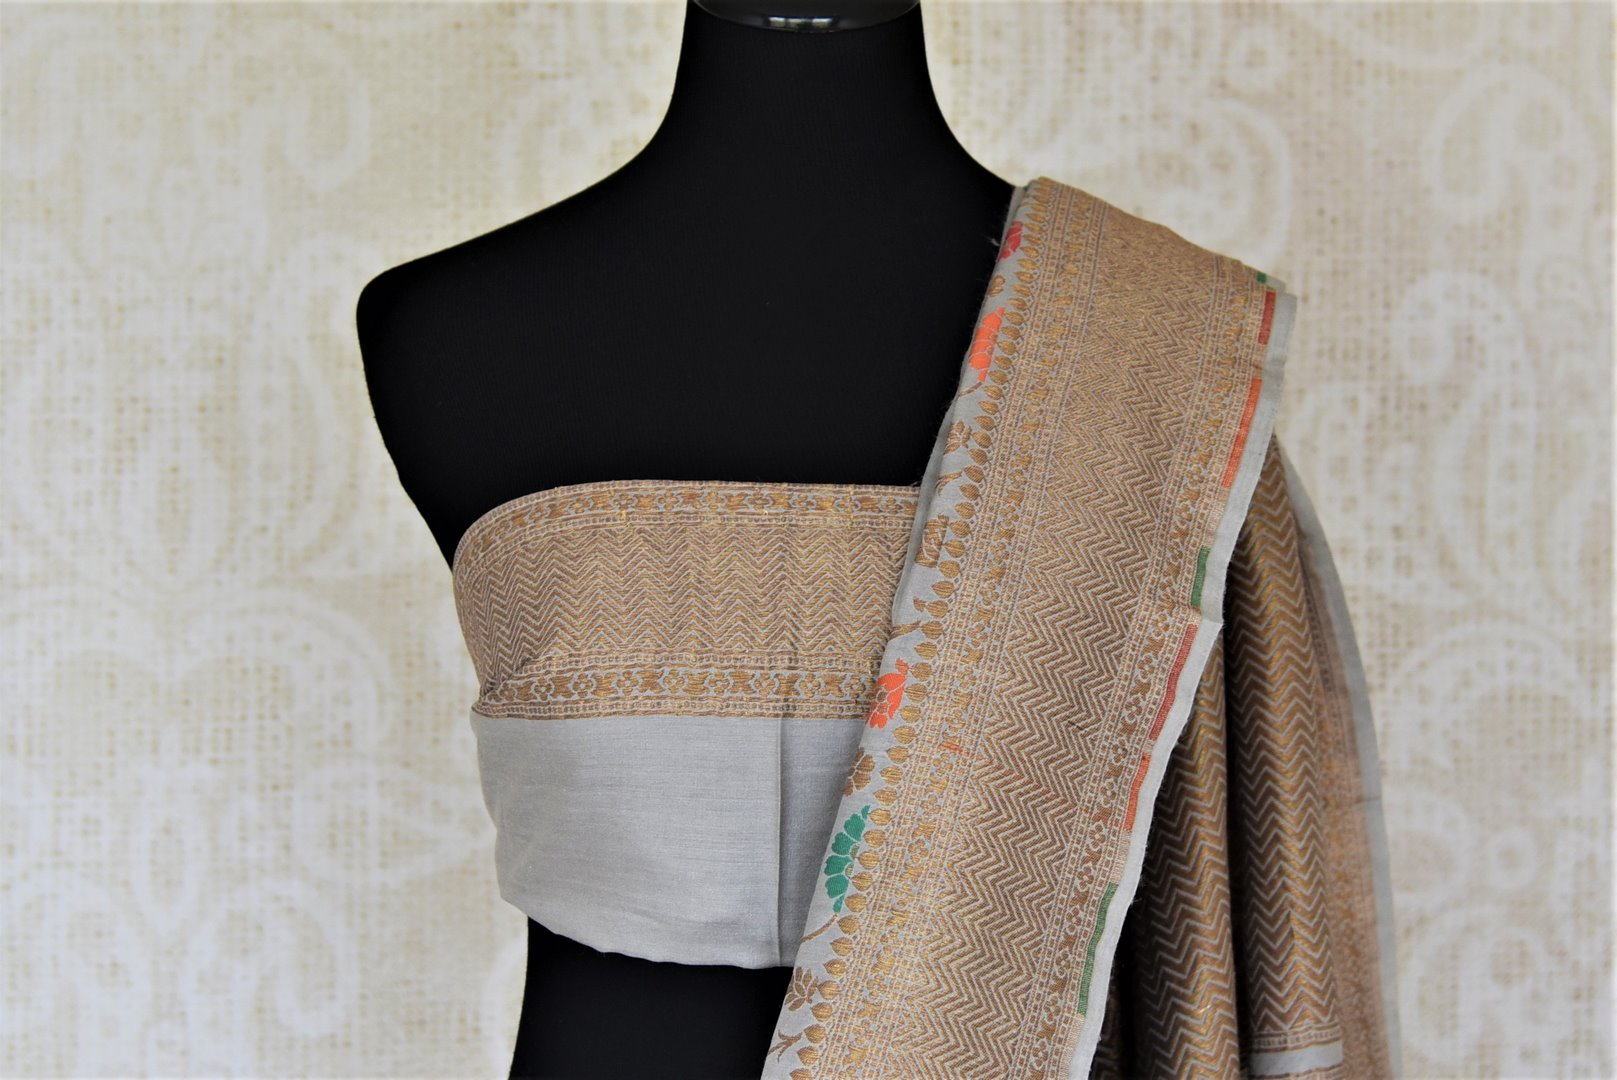 Shop gorgeous light grey minakari weave Banarasi saree online in USA. Keep it light yet festive on special occasions with beautiful handwoven saris, Banarasi sarees from Pure Elegance Indian fashion store in USA.-blouse pallu